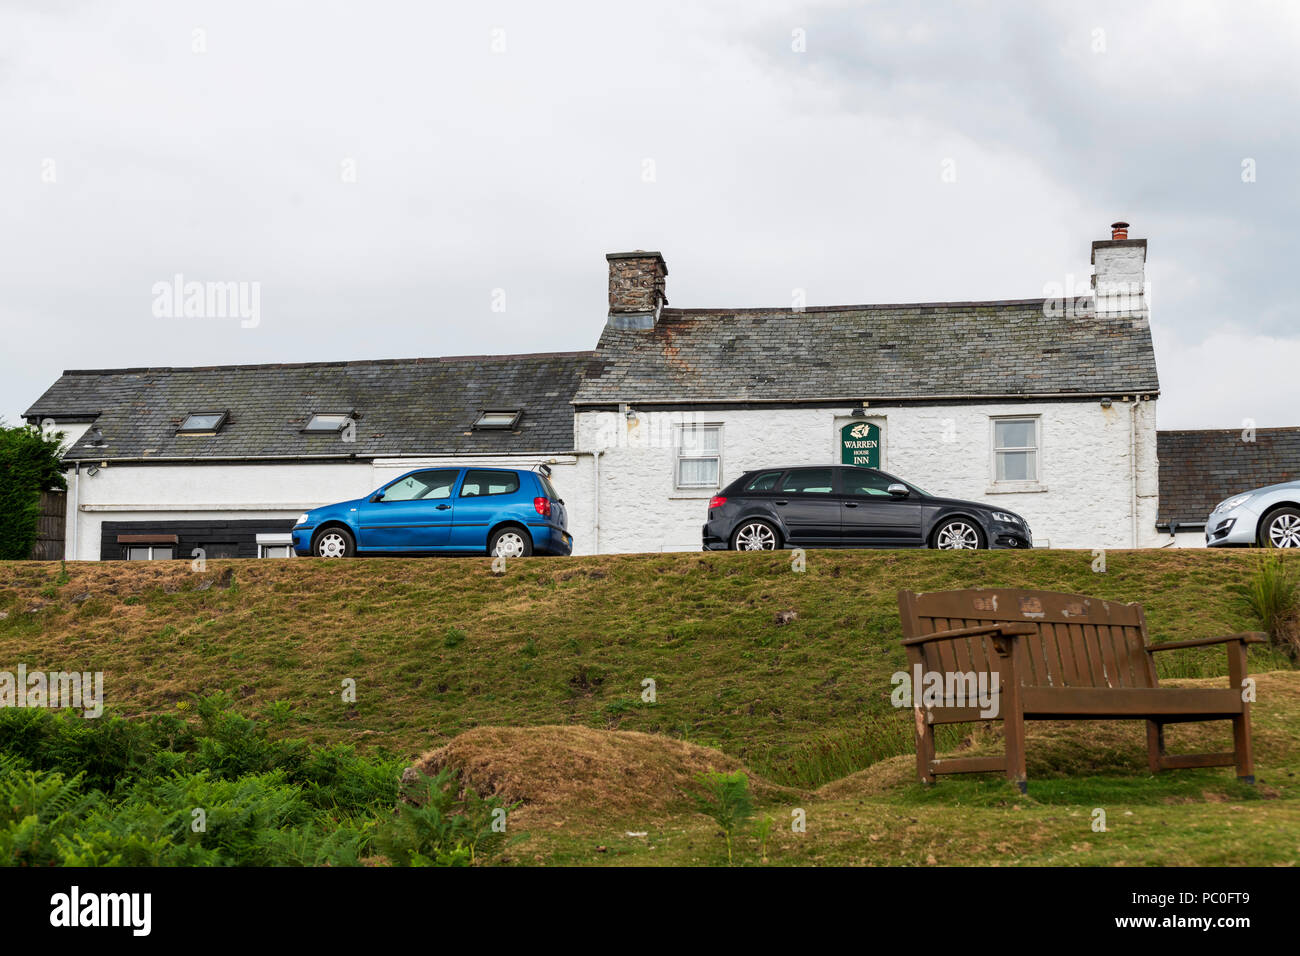 Warren Inn, Dartmoor - Stock Image